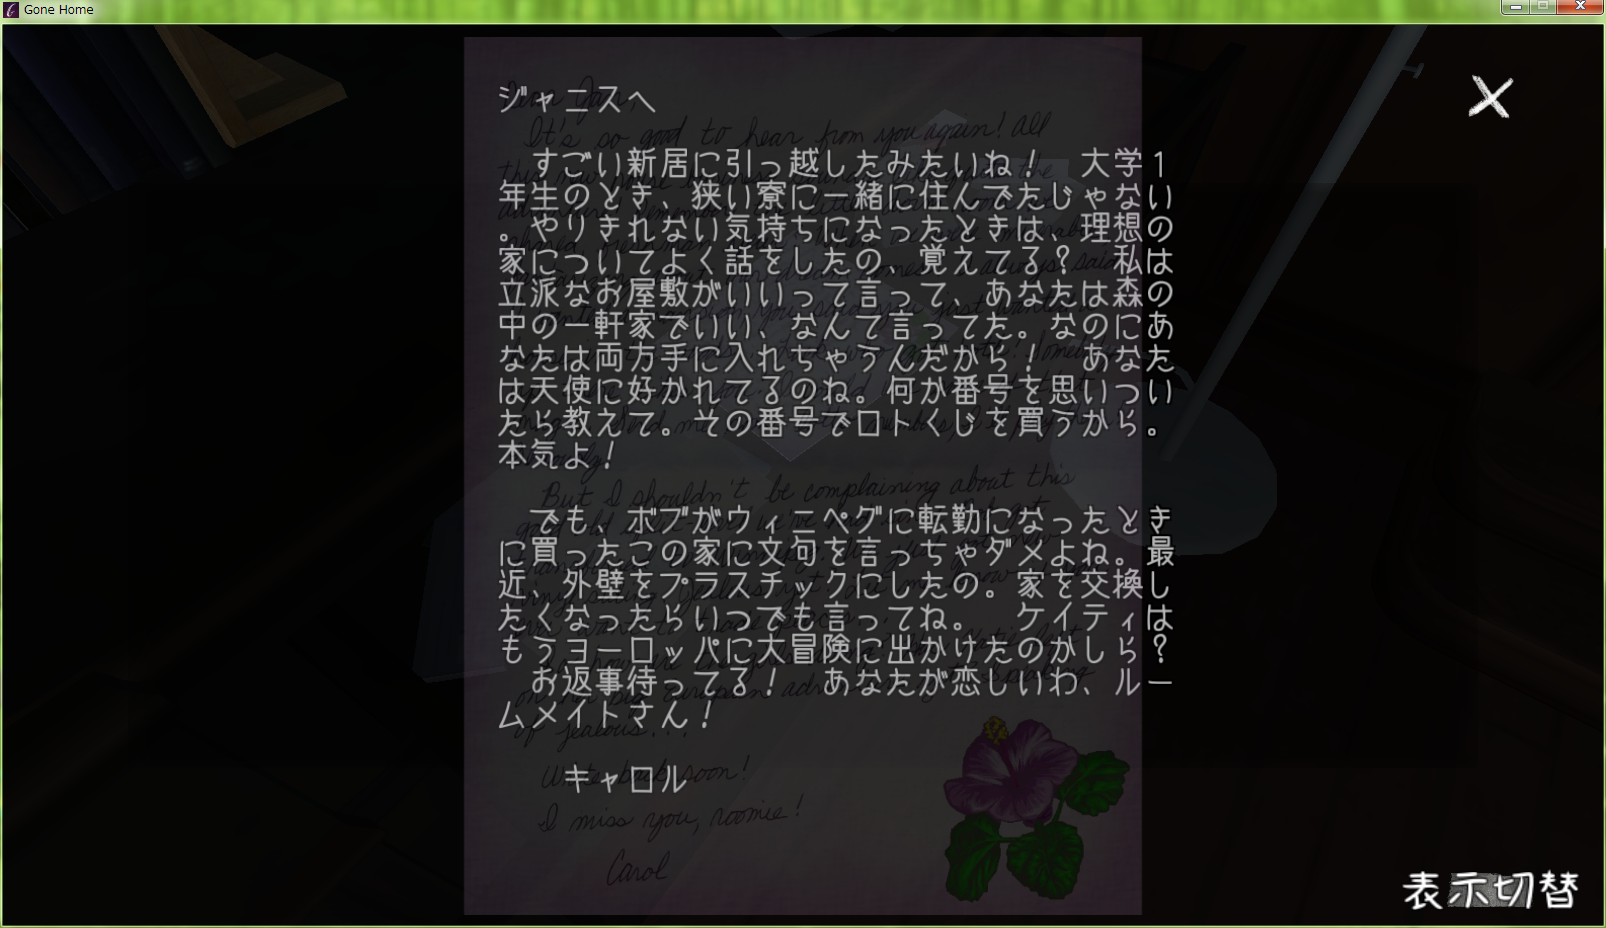 gonehome_6.png